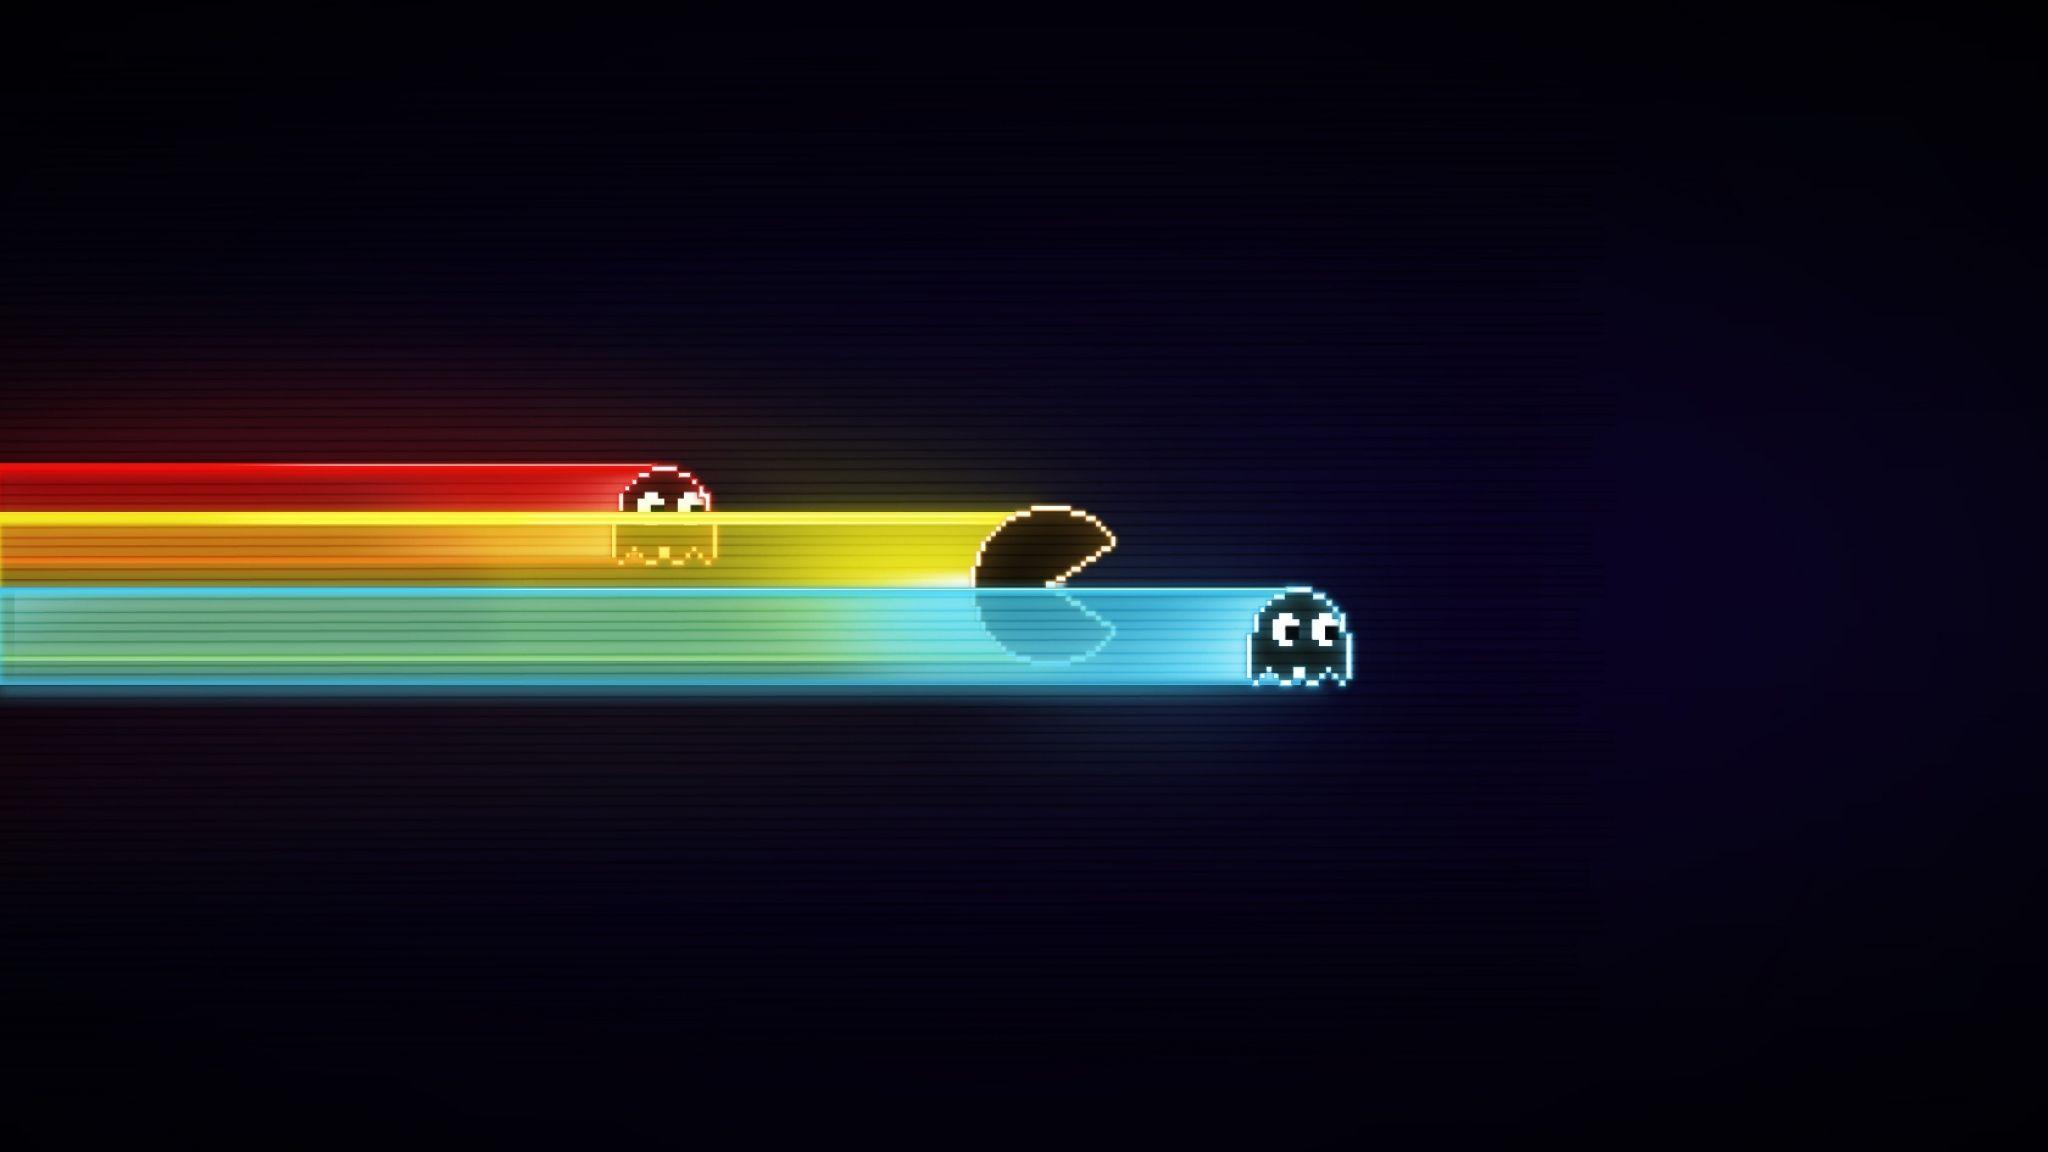 HD Pacman Wallpapers HD, Desktop Backgrounds 2048x1152, Image and